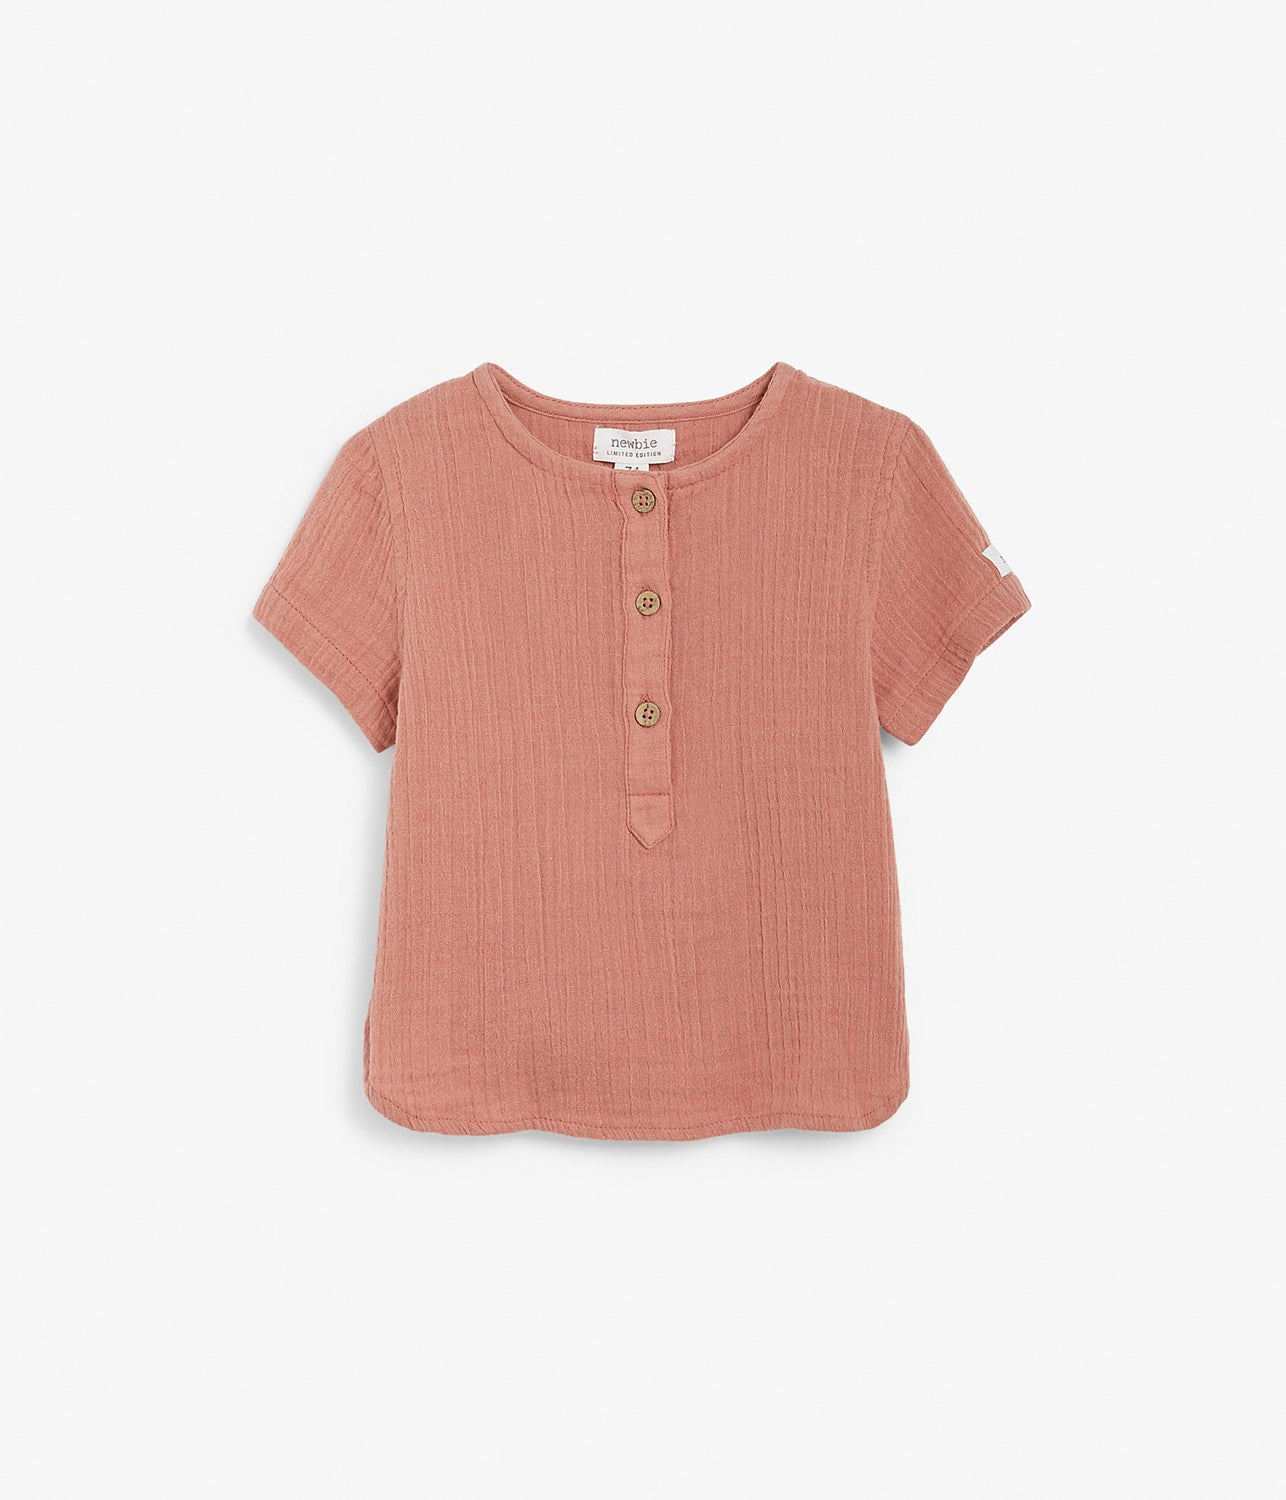 Baby red crinkled texture shirt